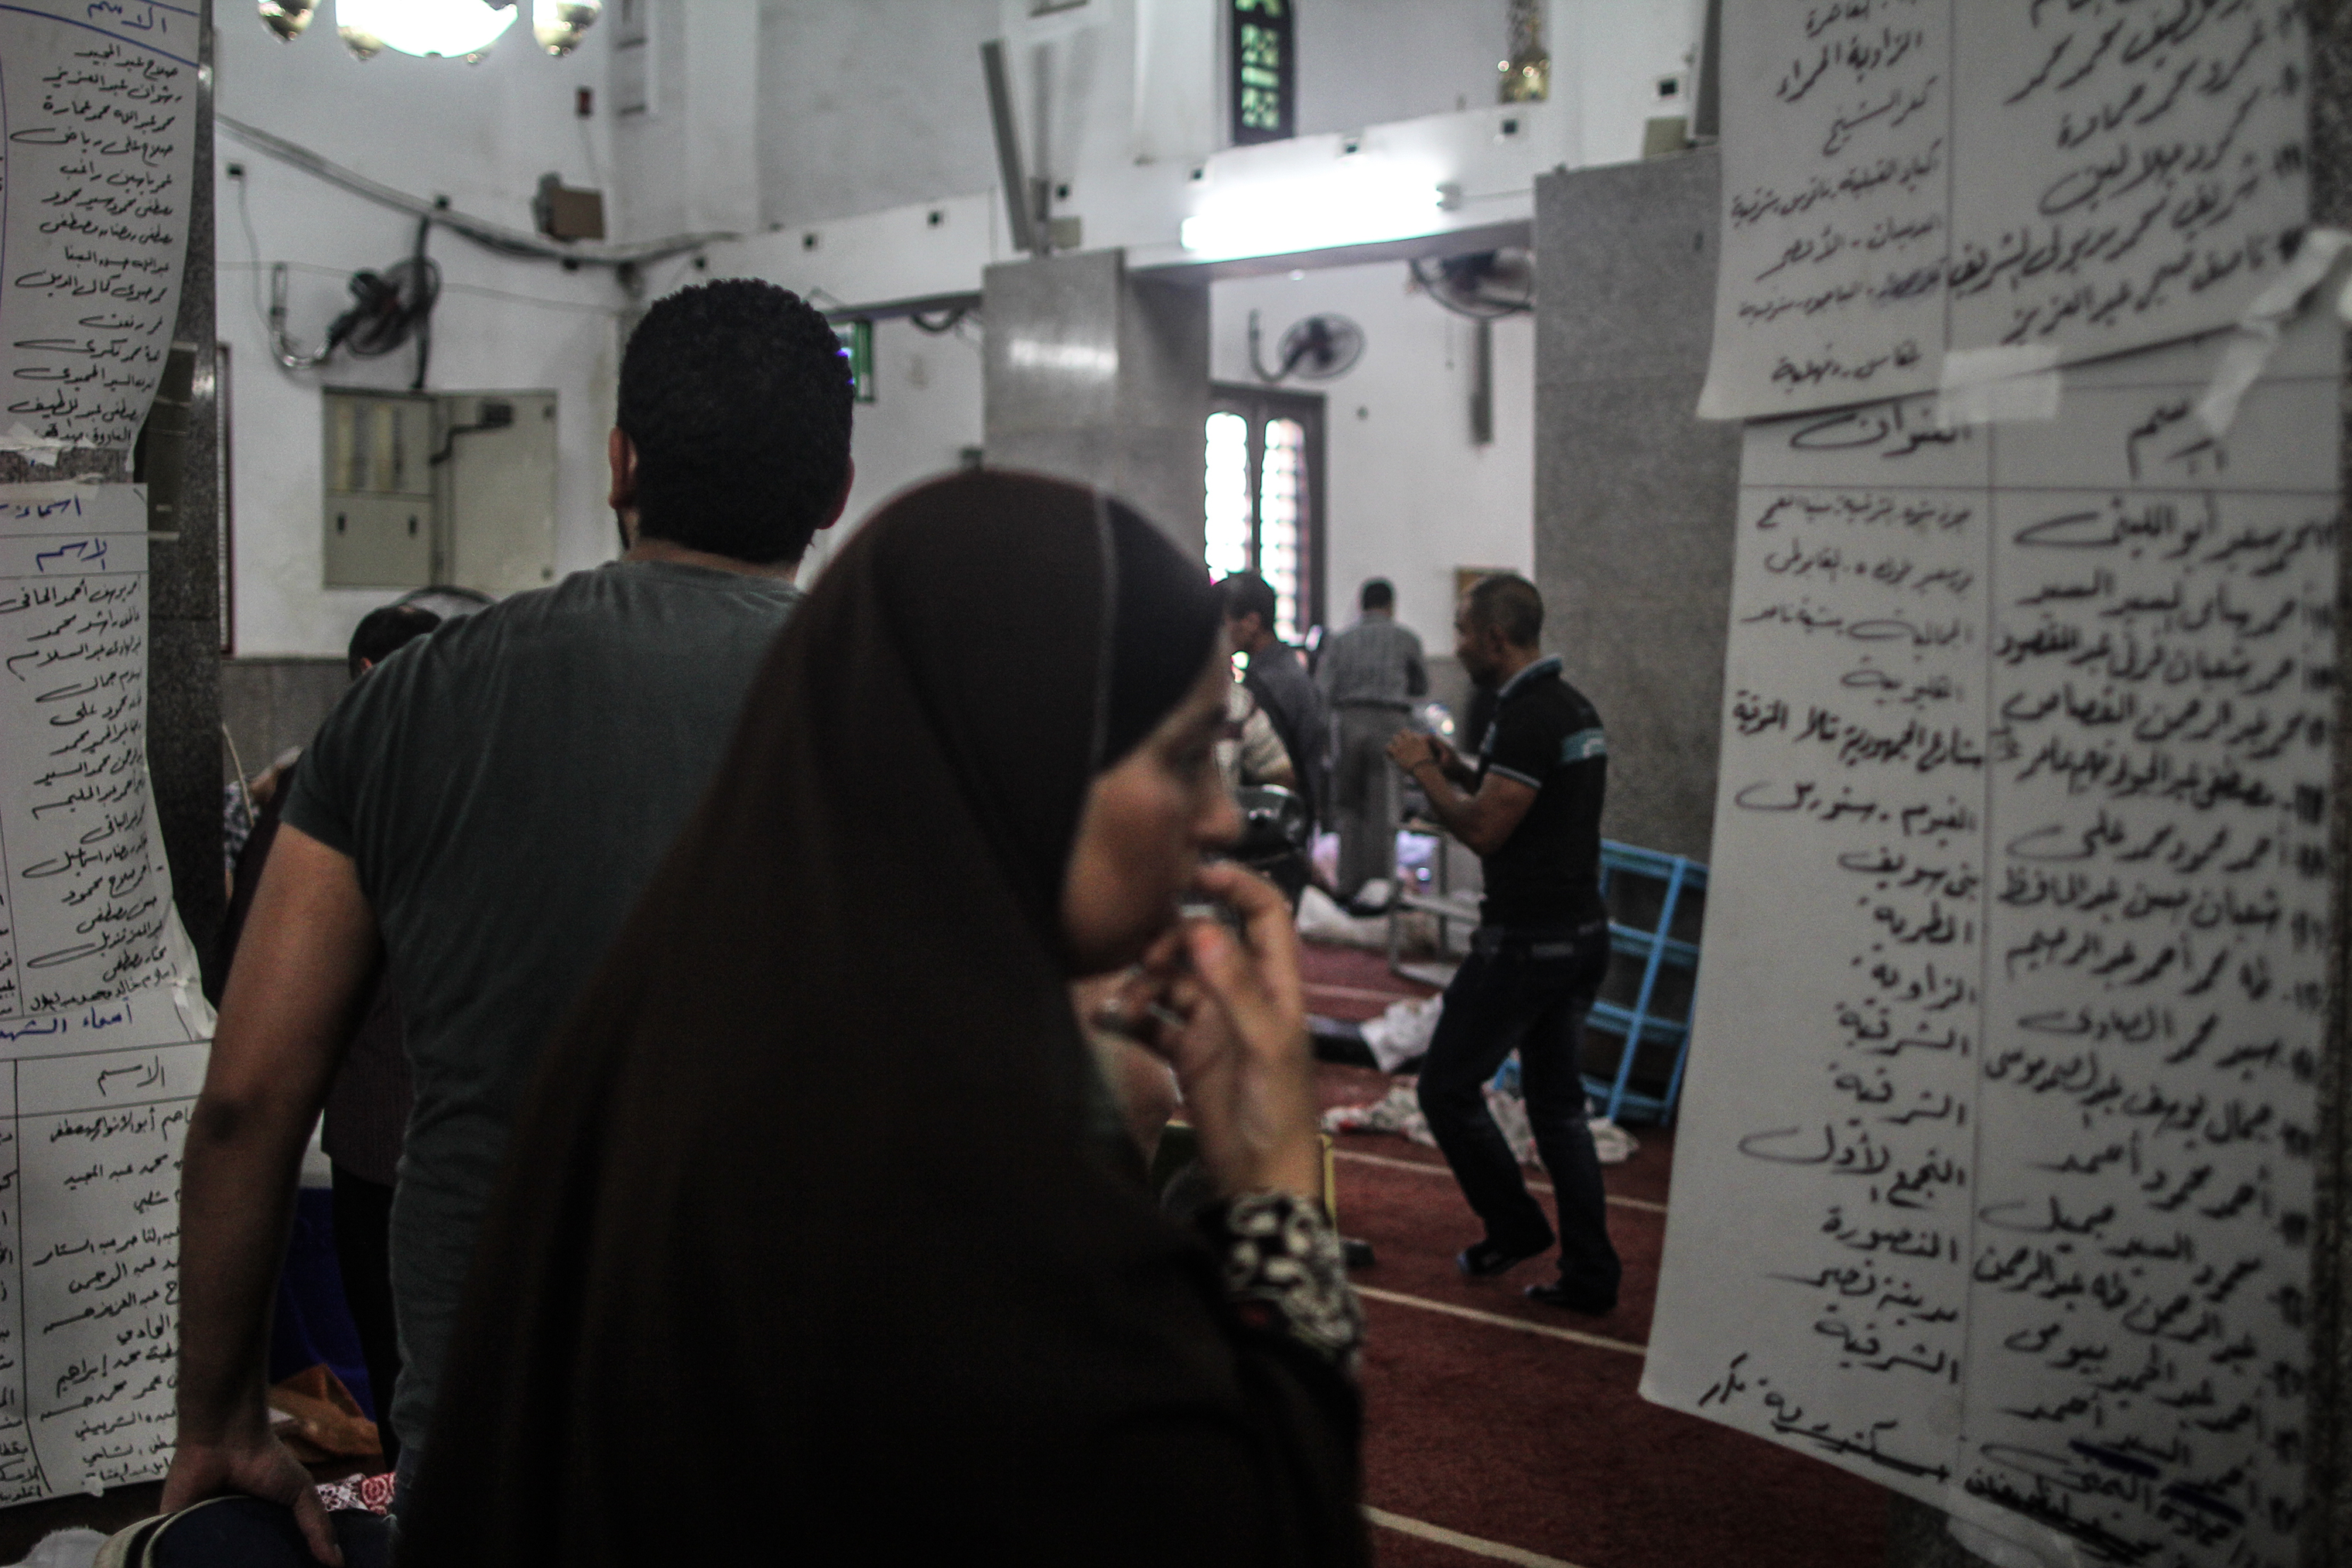 The next day, at a mosque where the bodies were transferred, a distraught mother searches for her son's name on a list showing who had been killed.